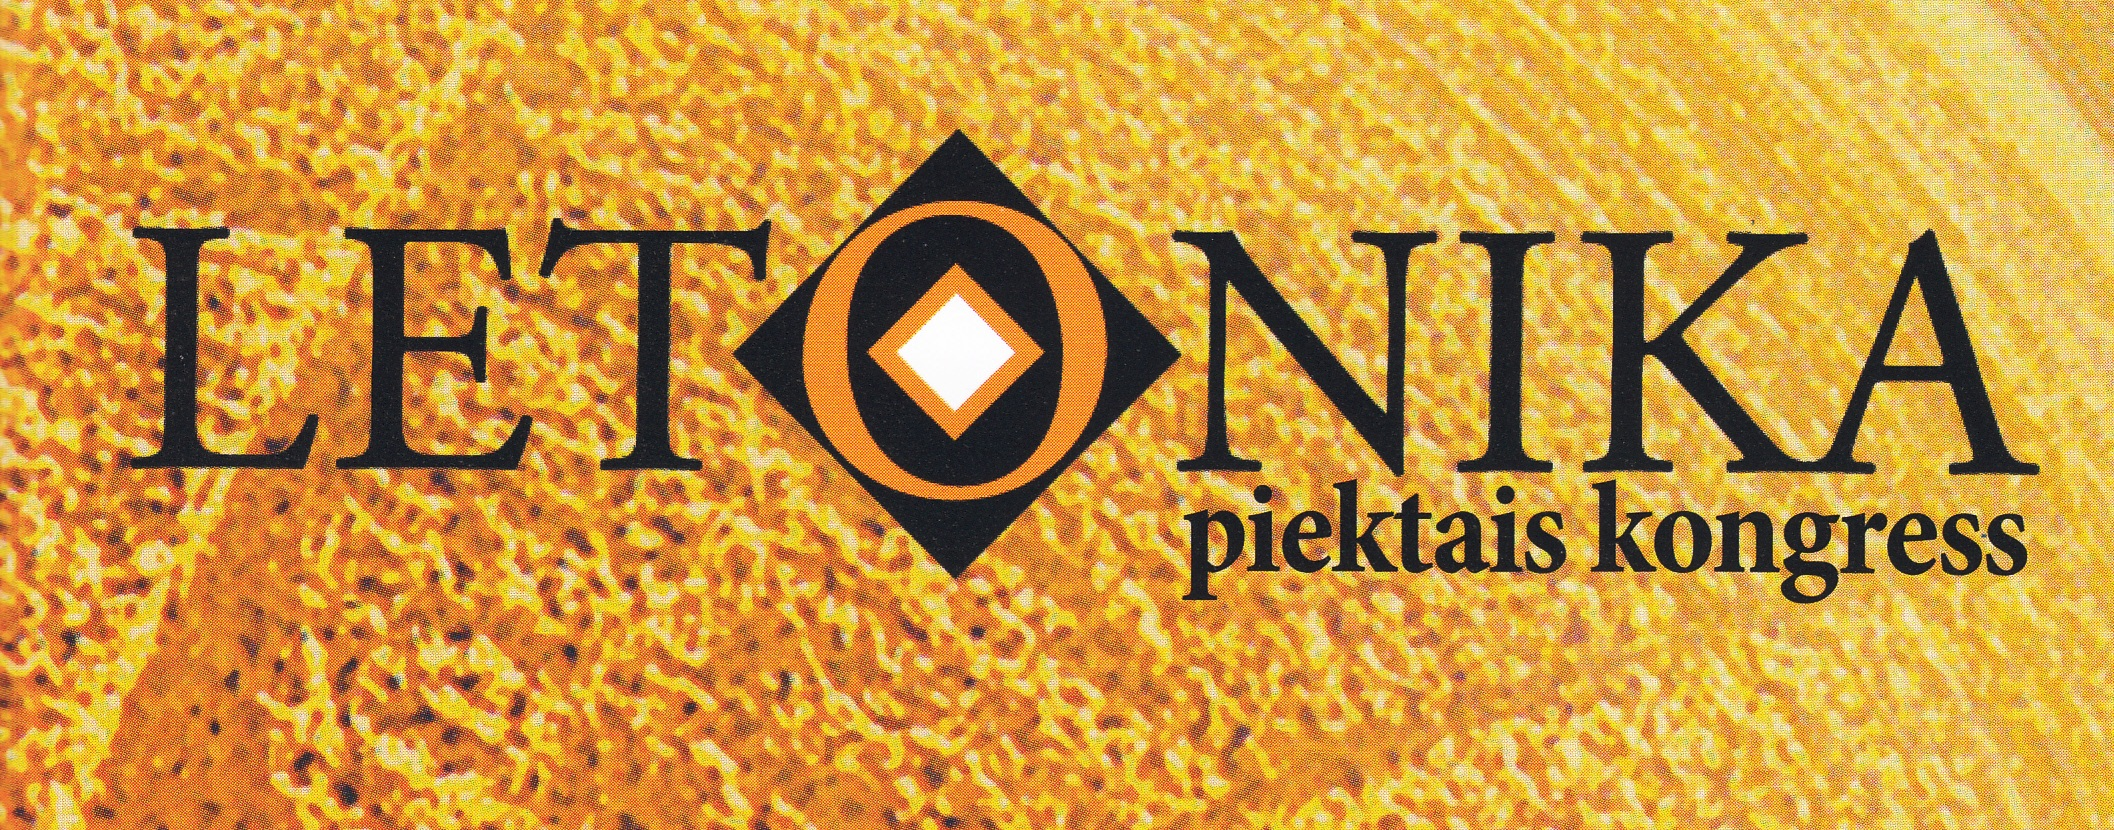 Letonikas 5. kongress